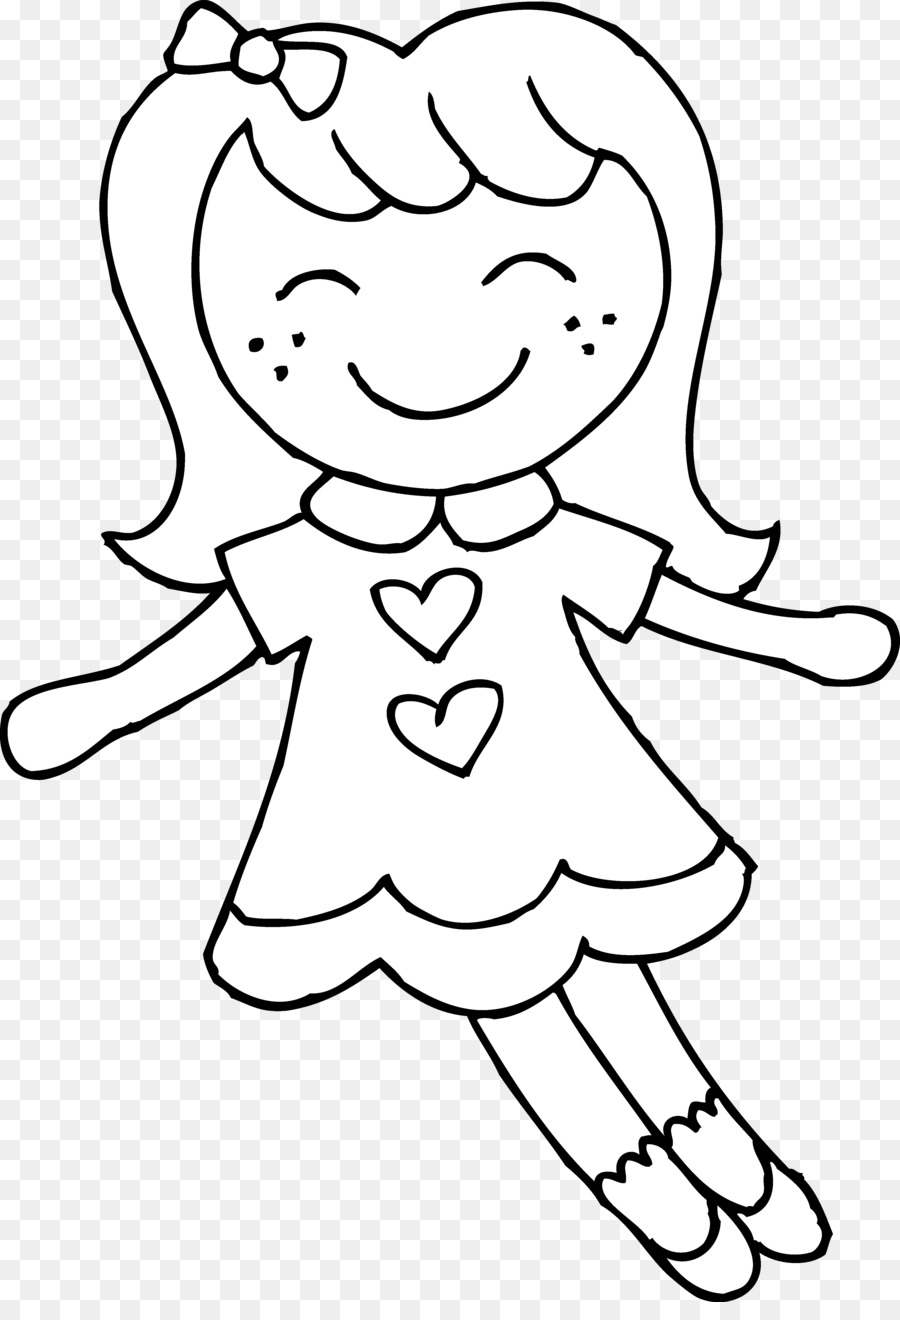 Barbie clipart black and white. Doll clip art toy